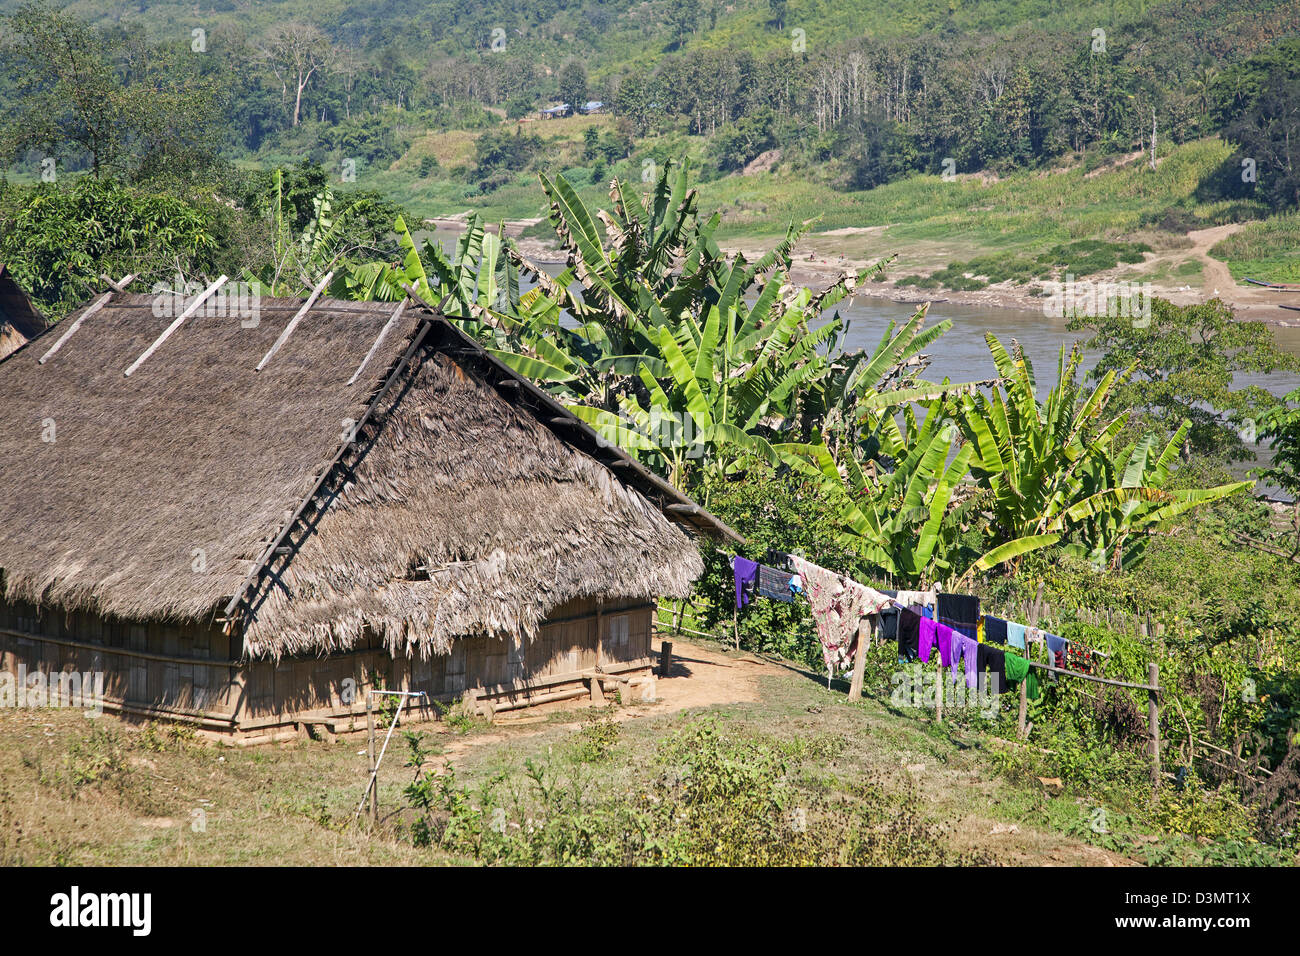 Traditional farmhouse with thatched roof and laundry drying on clothesline along the Mekong river, Laos, Southeast - Stock Image